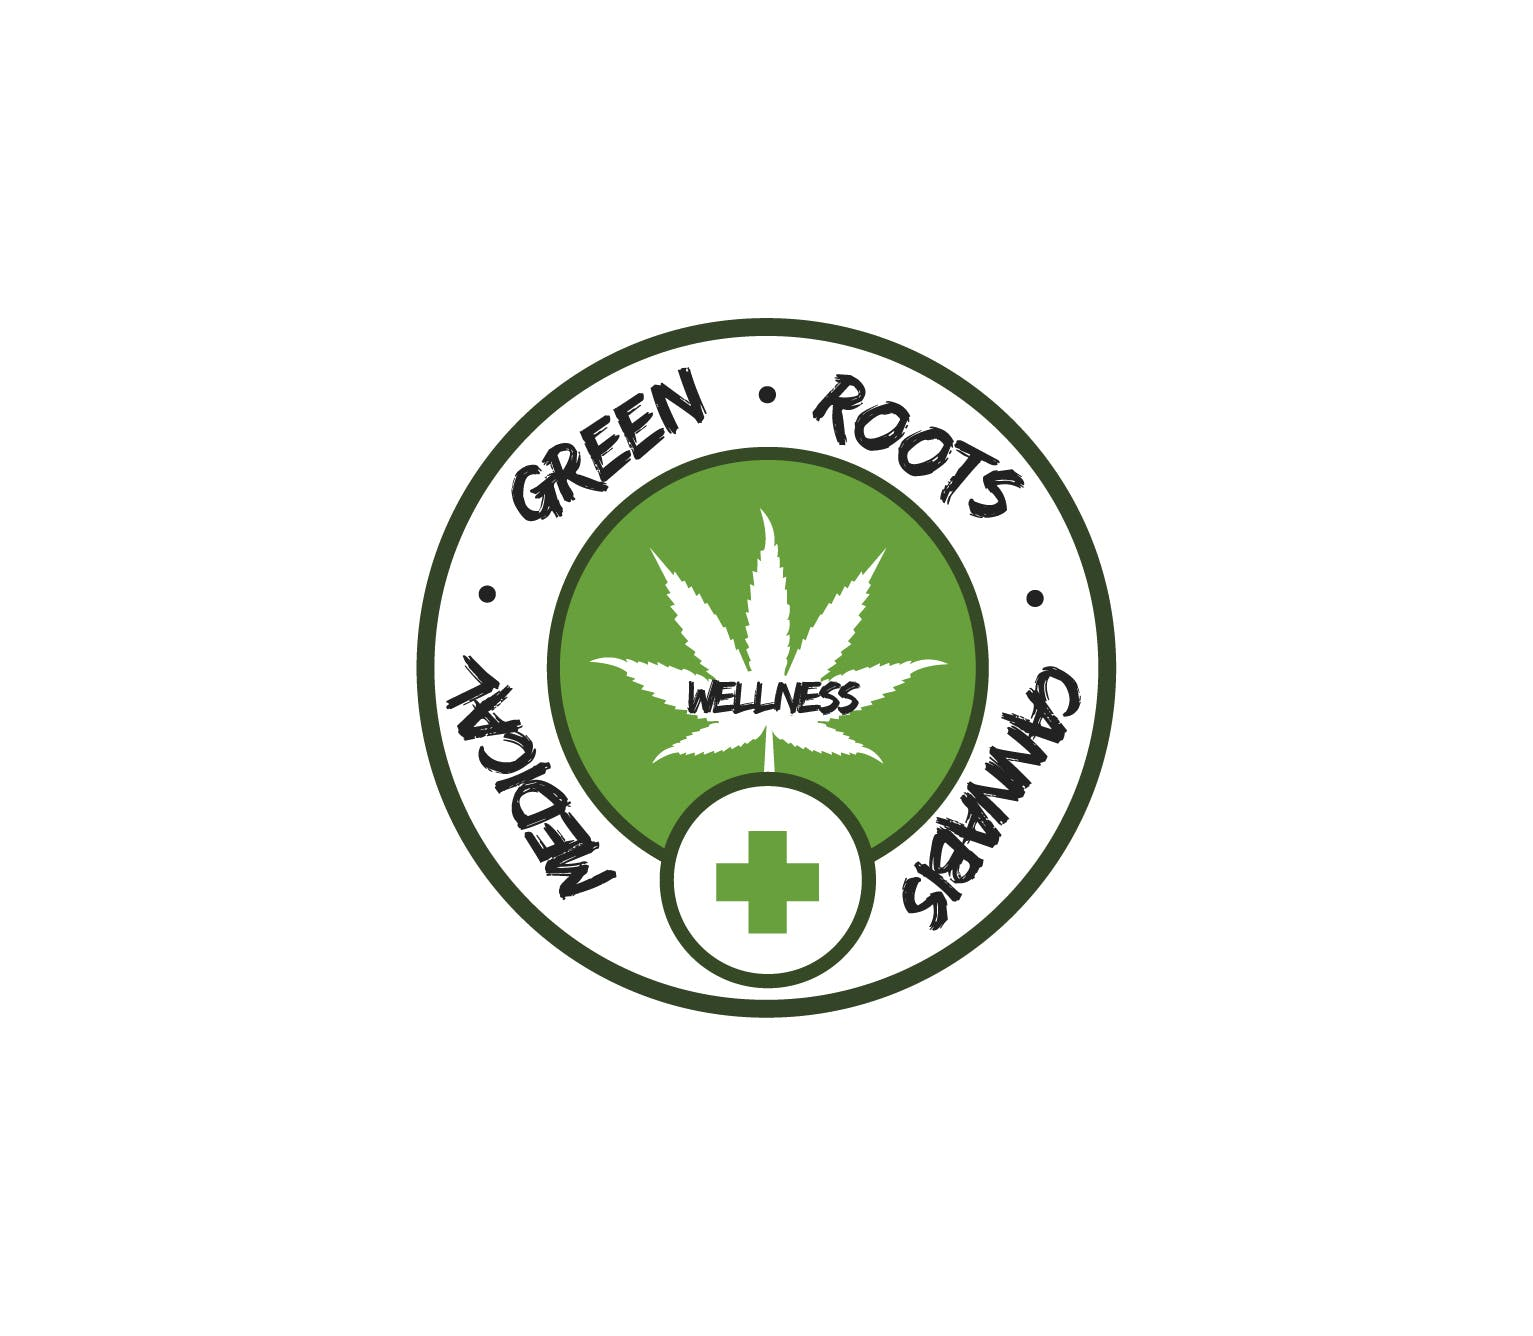 Green Roots Wellness - Medical Marijuana Doctors - Cannabizme.com